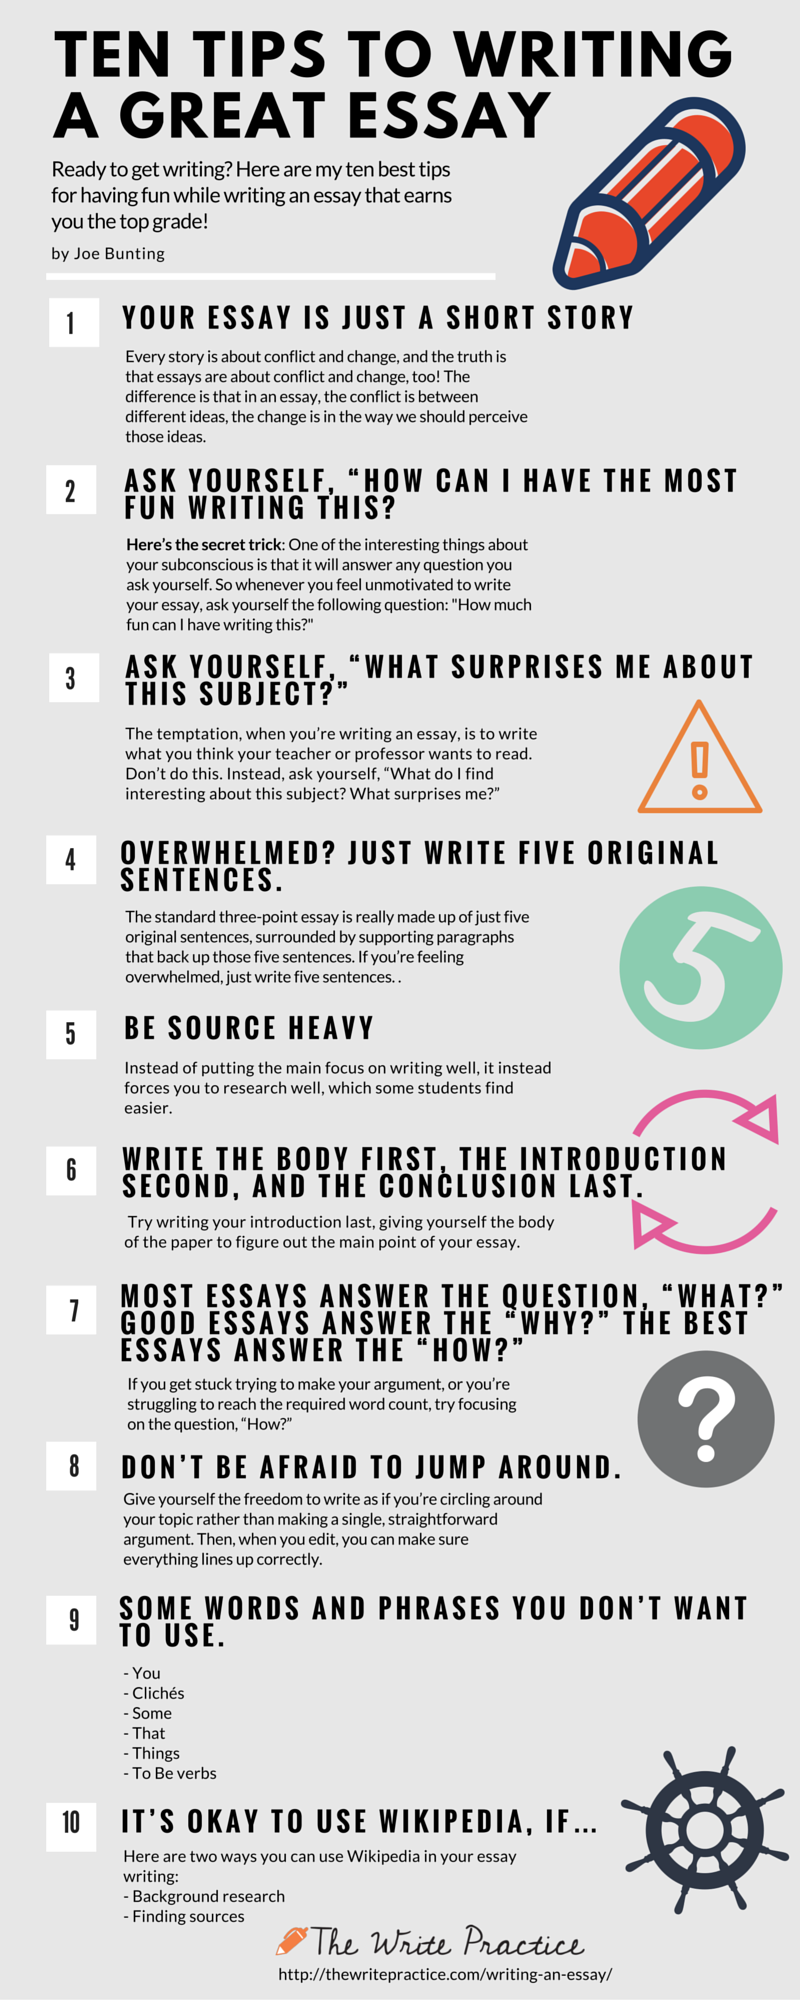 tips to write an essay and actually enjoy it writing an essay that in mind here s an infographic ten tips to write an essay out hating every moment of the process get the dream tech or developer job you